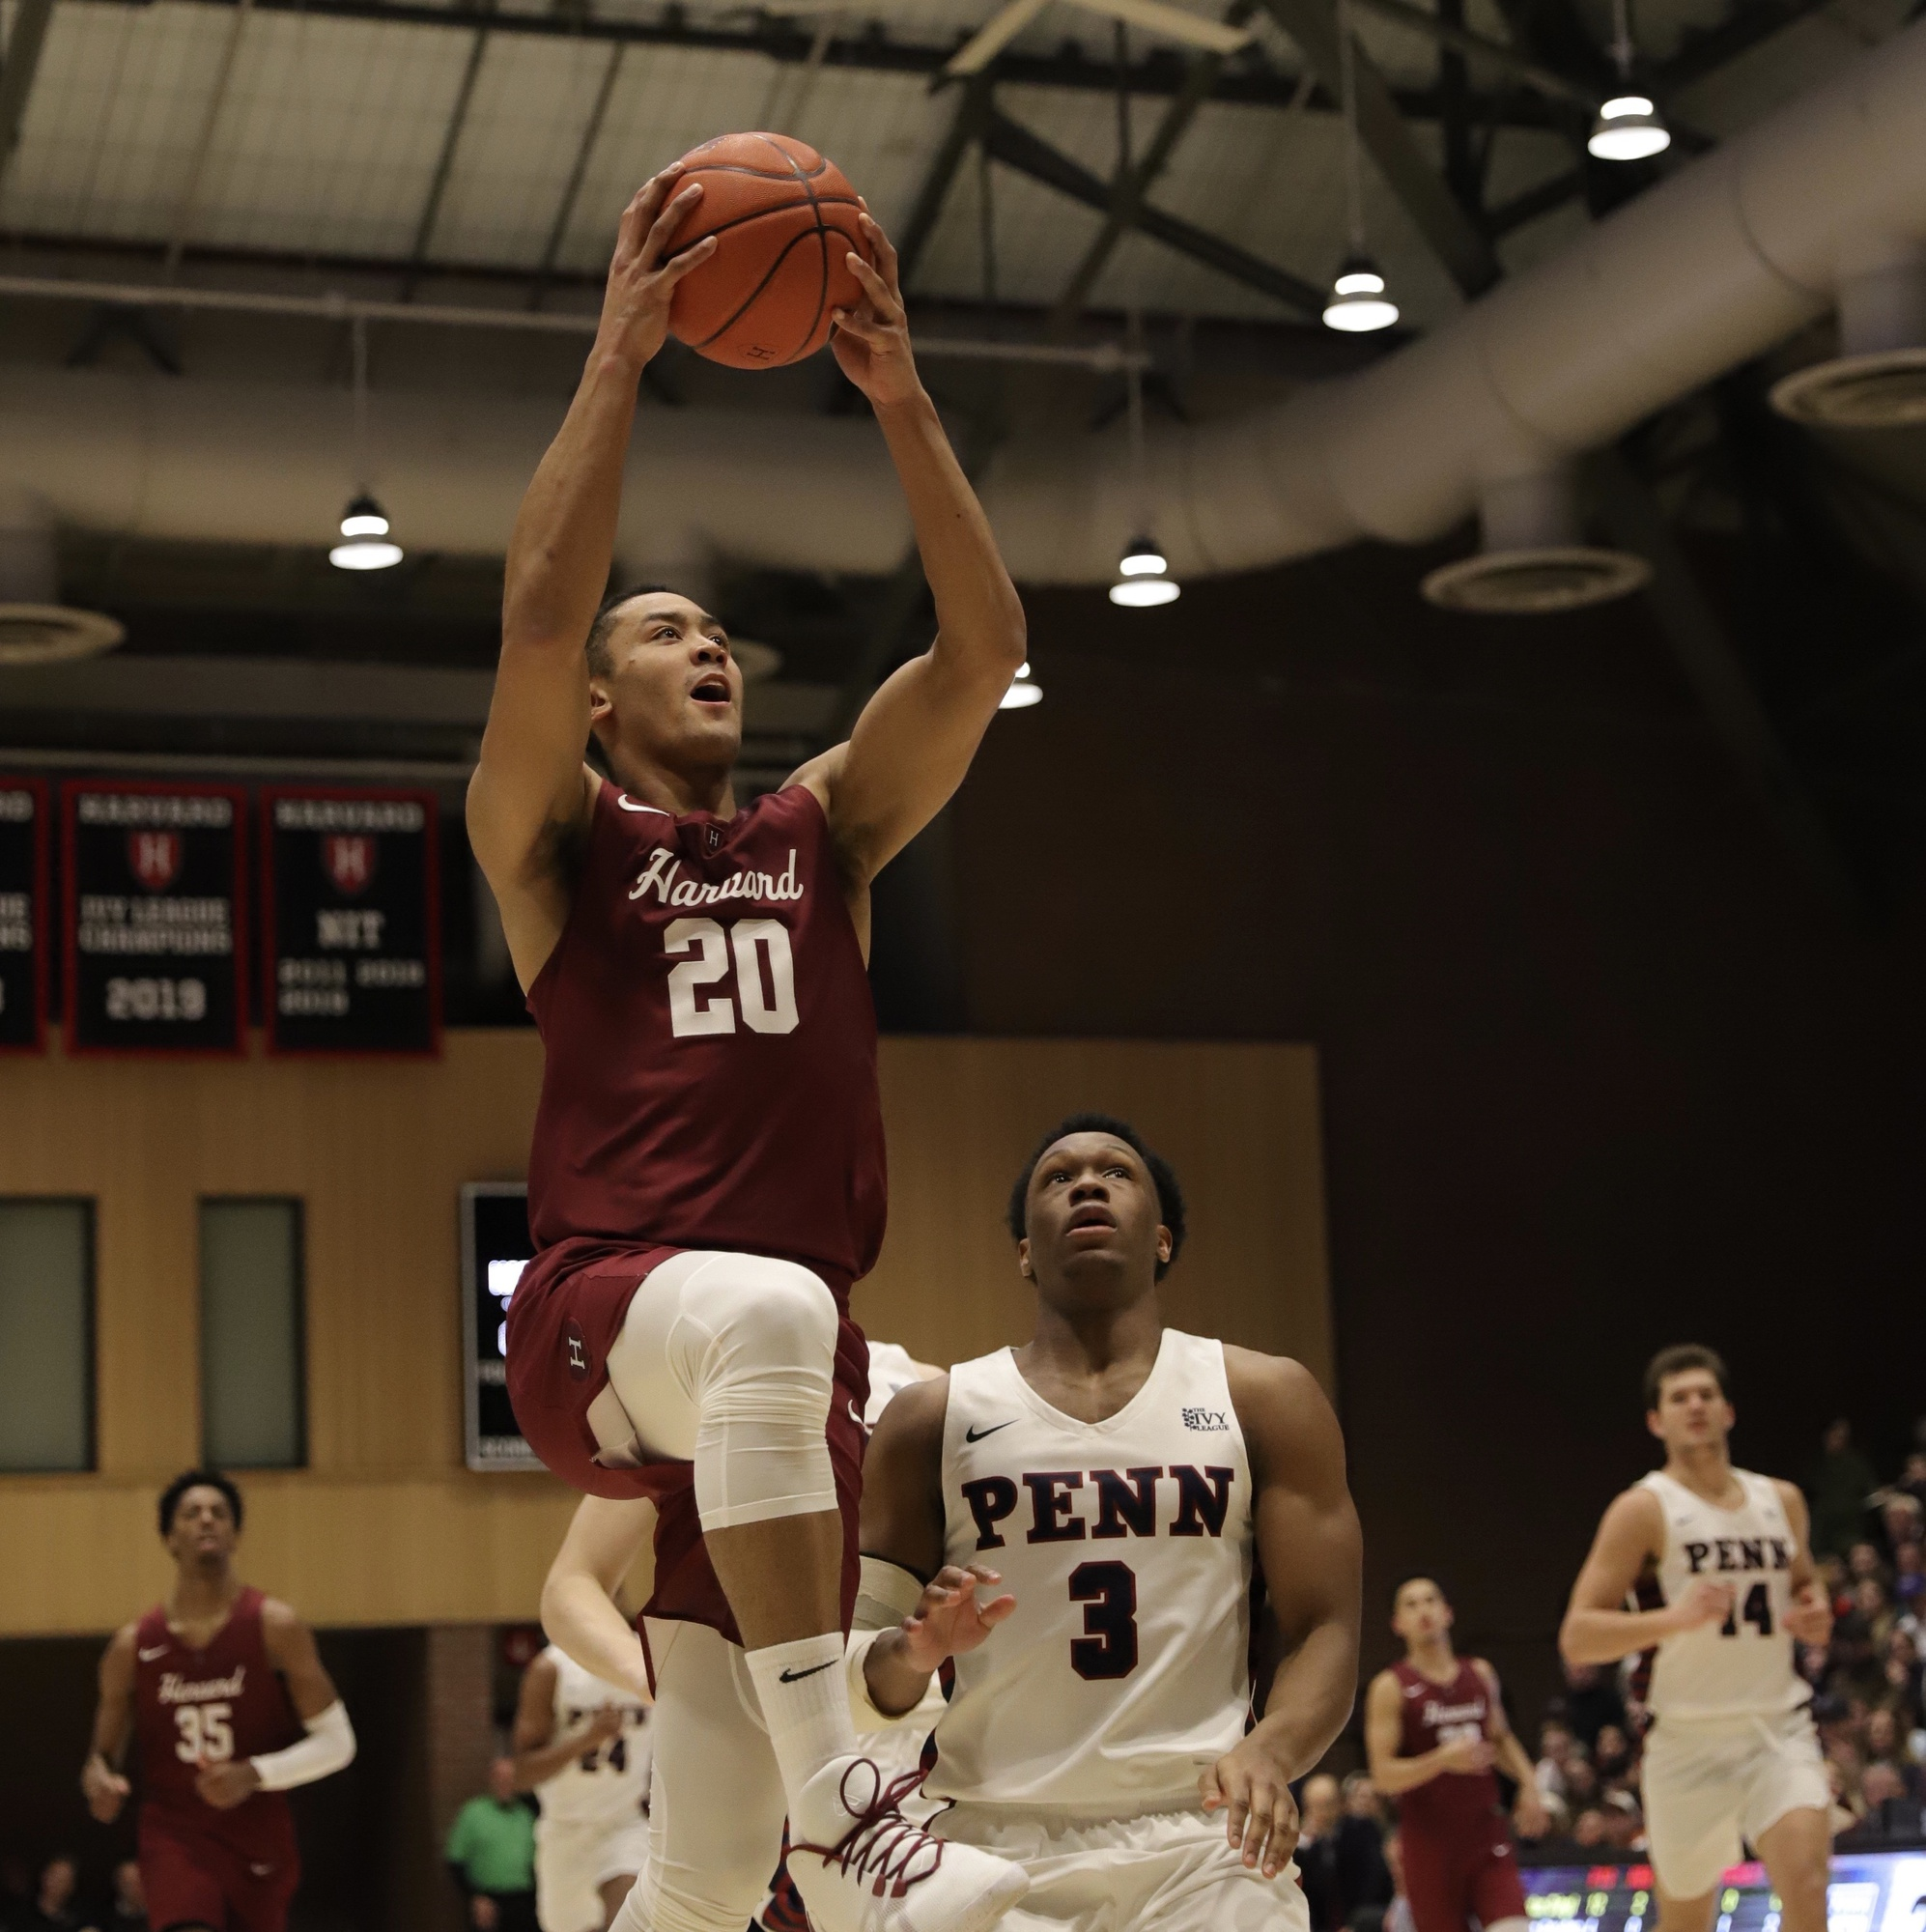 Senior guard Justin Bassey skies to the hoop in a late-February Ivy League tilt. In his senior season, the Denver native started all 29 games, averaging 28.2 minutes per contest, before the season ended with the cancellation of the Ivy League Tournament.